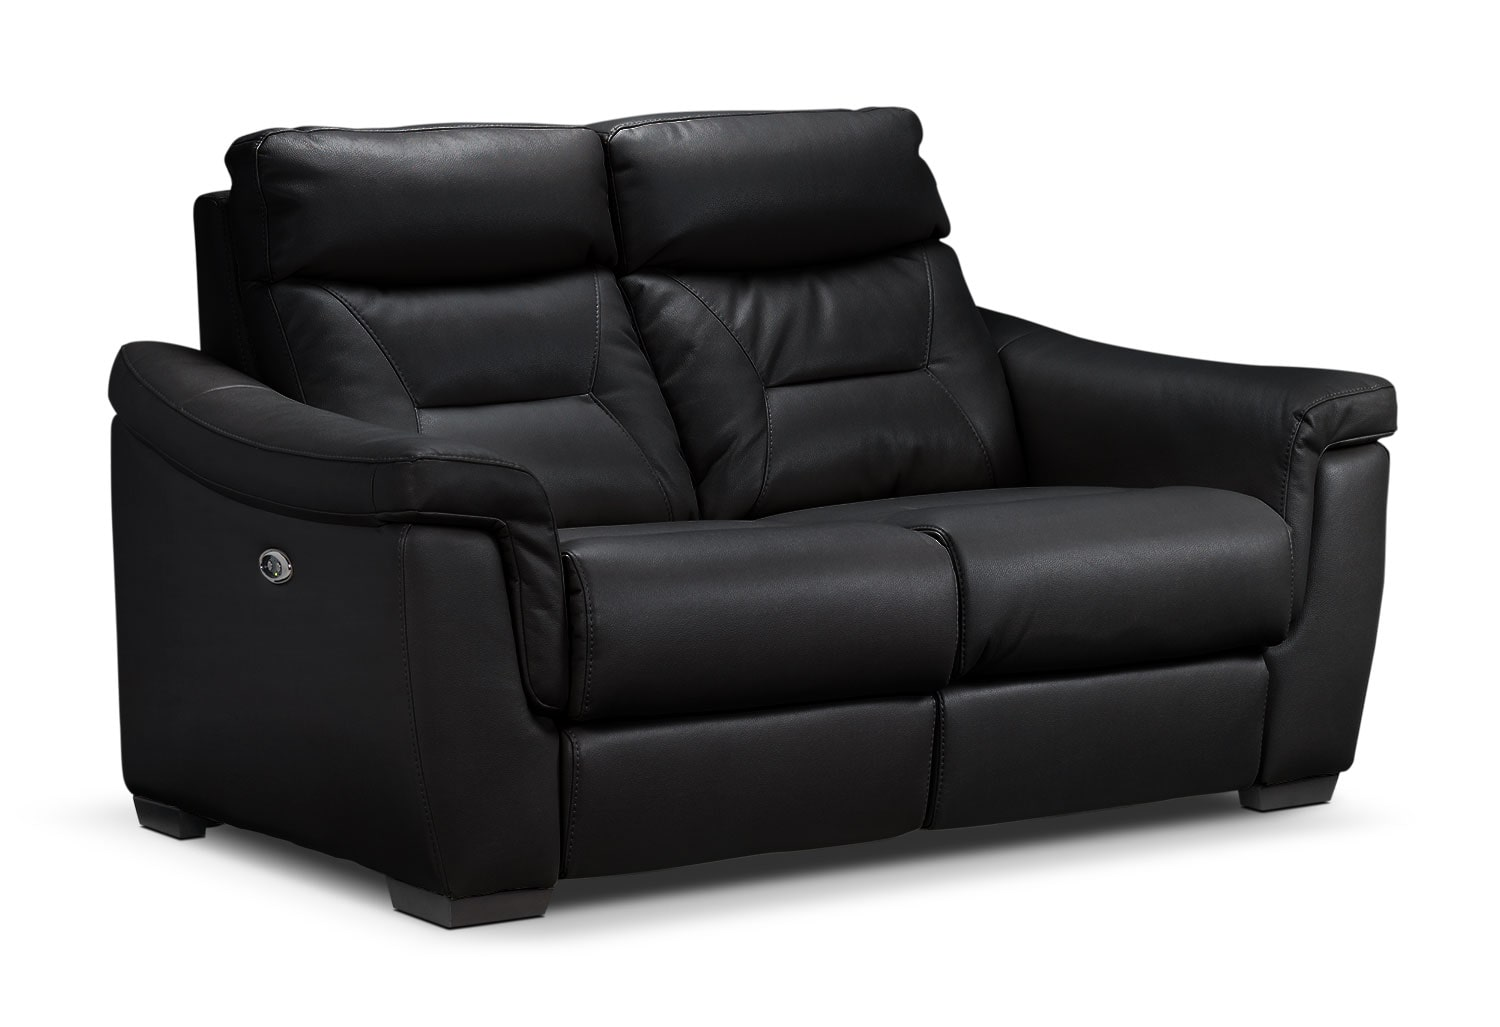 Living Room Furniture - Ralston Power Reclining Loveseat - Black